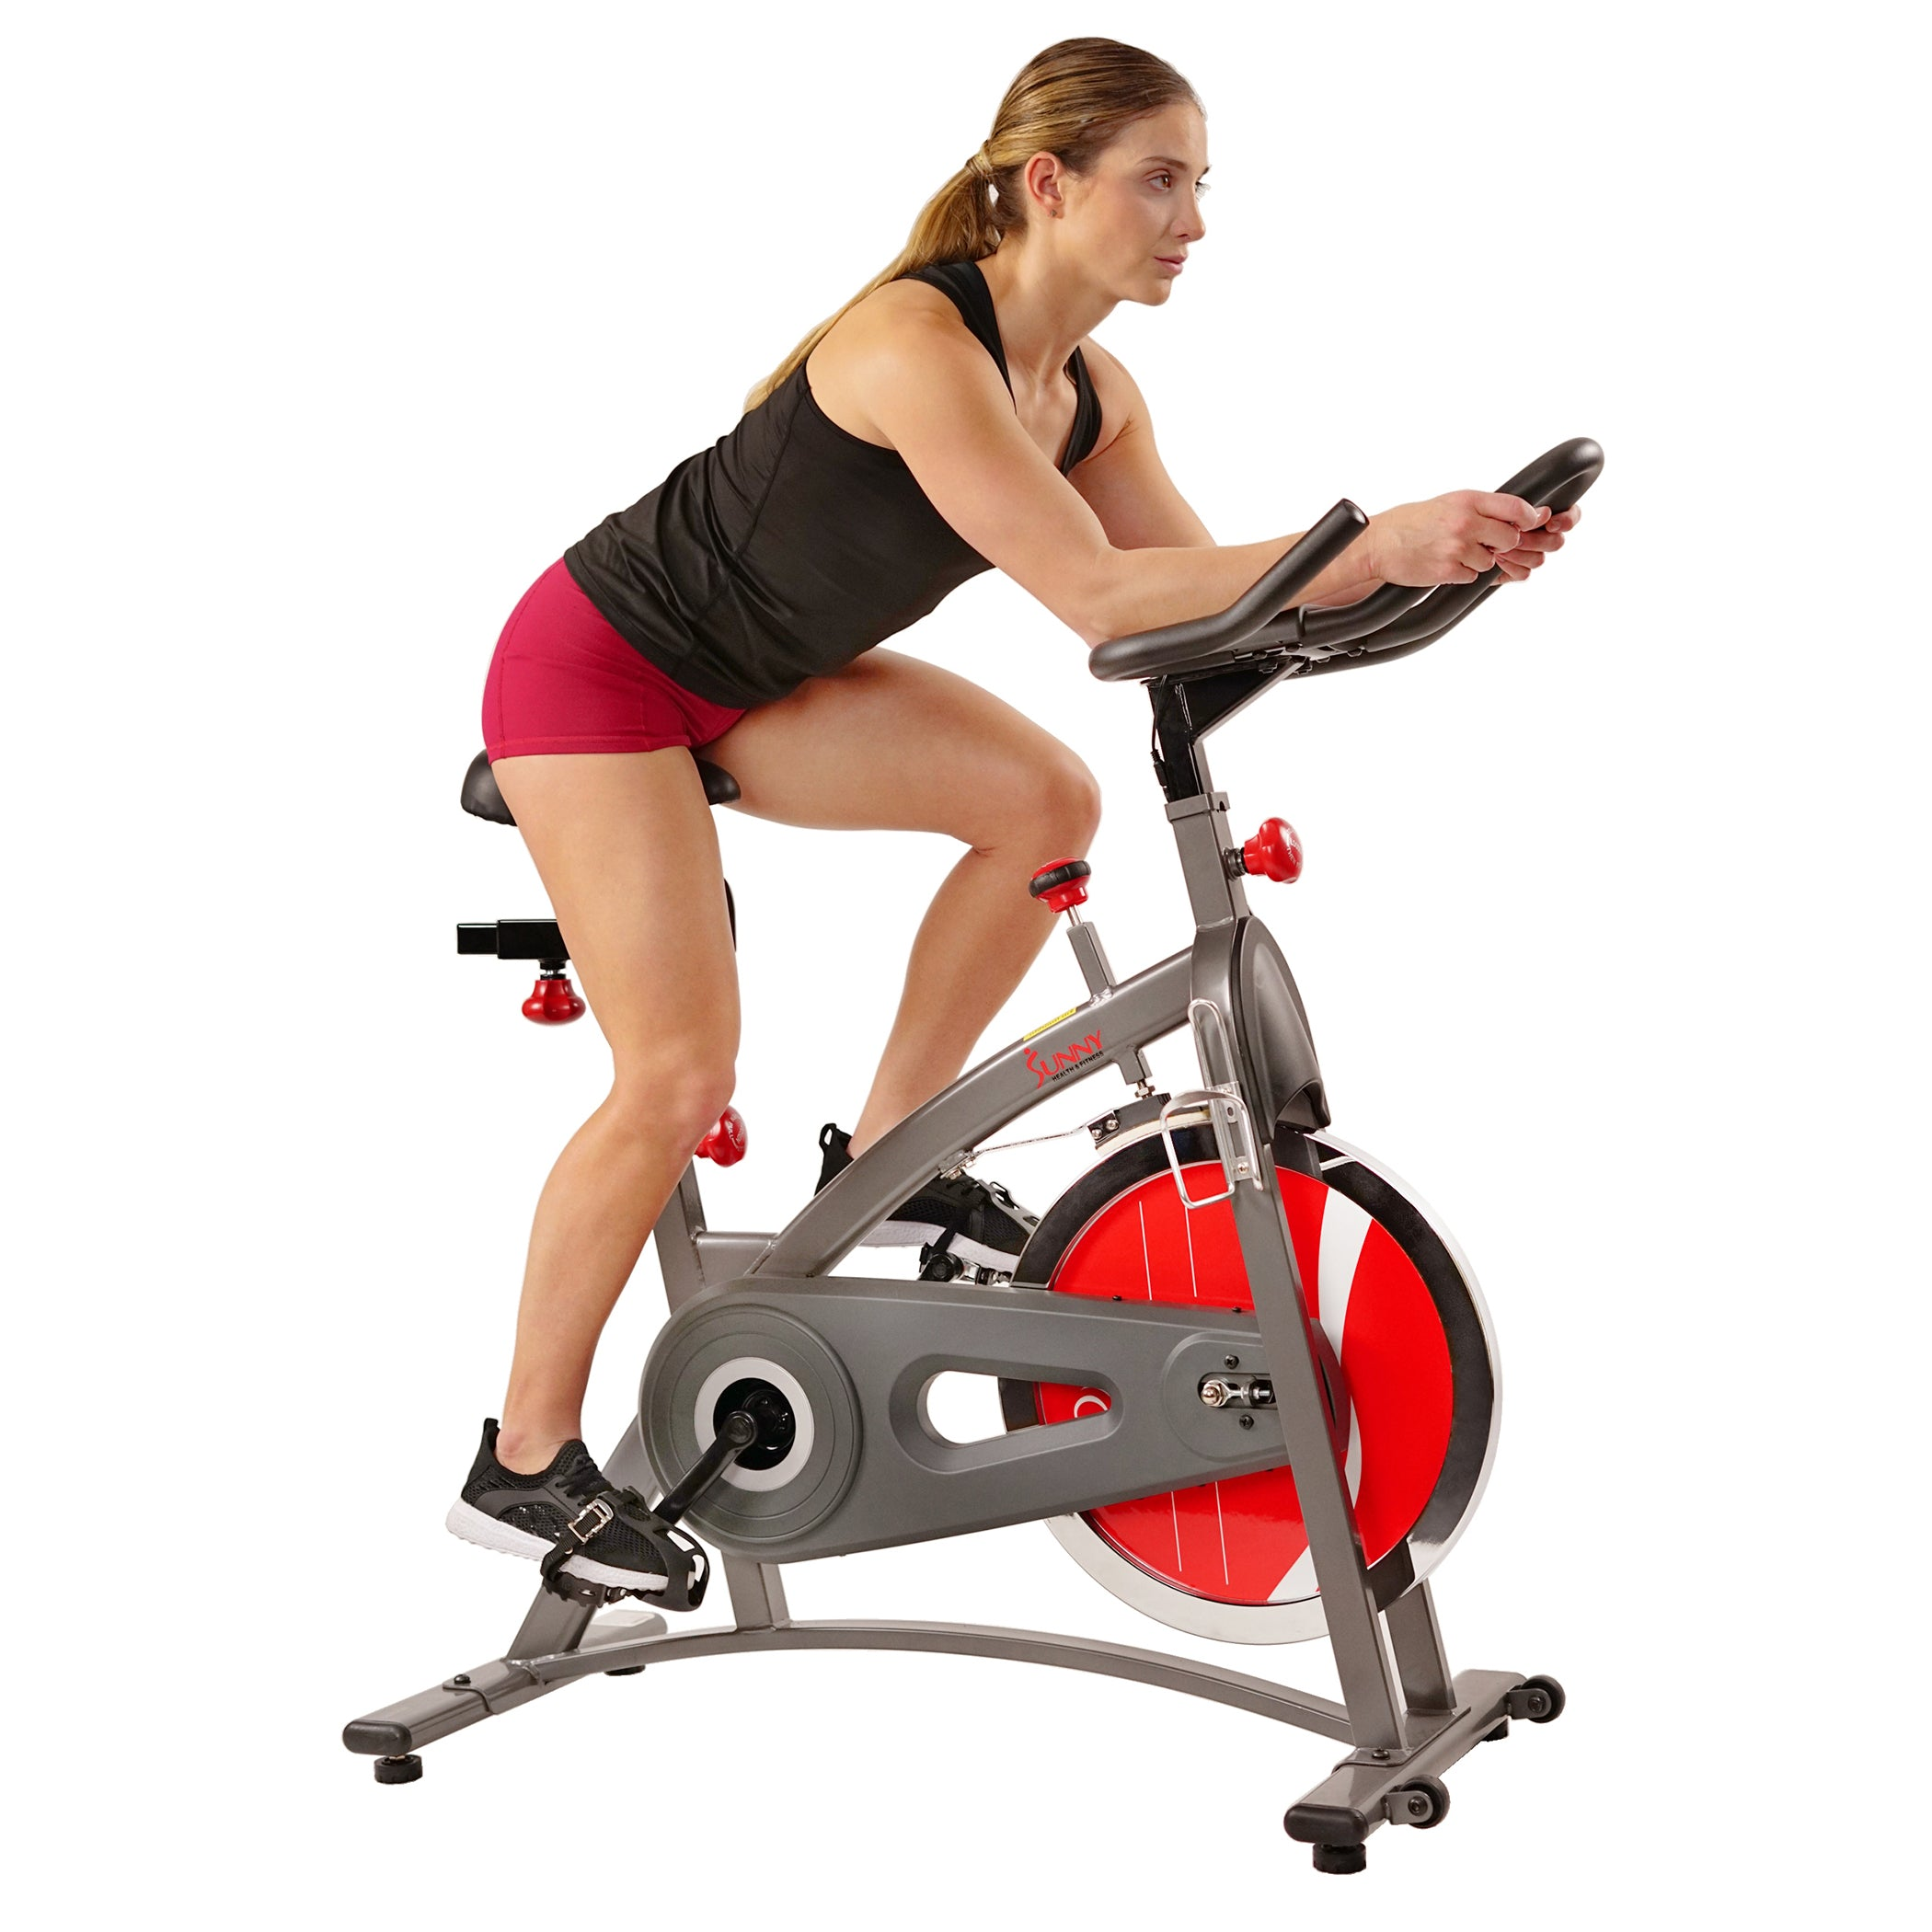 sunny-health-fitness-bikes-chain-drive-indoor-cycling-bike-lcd-monitor-SF-B1423C-Dimensions